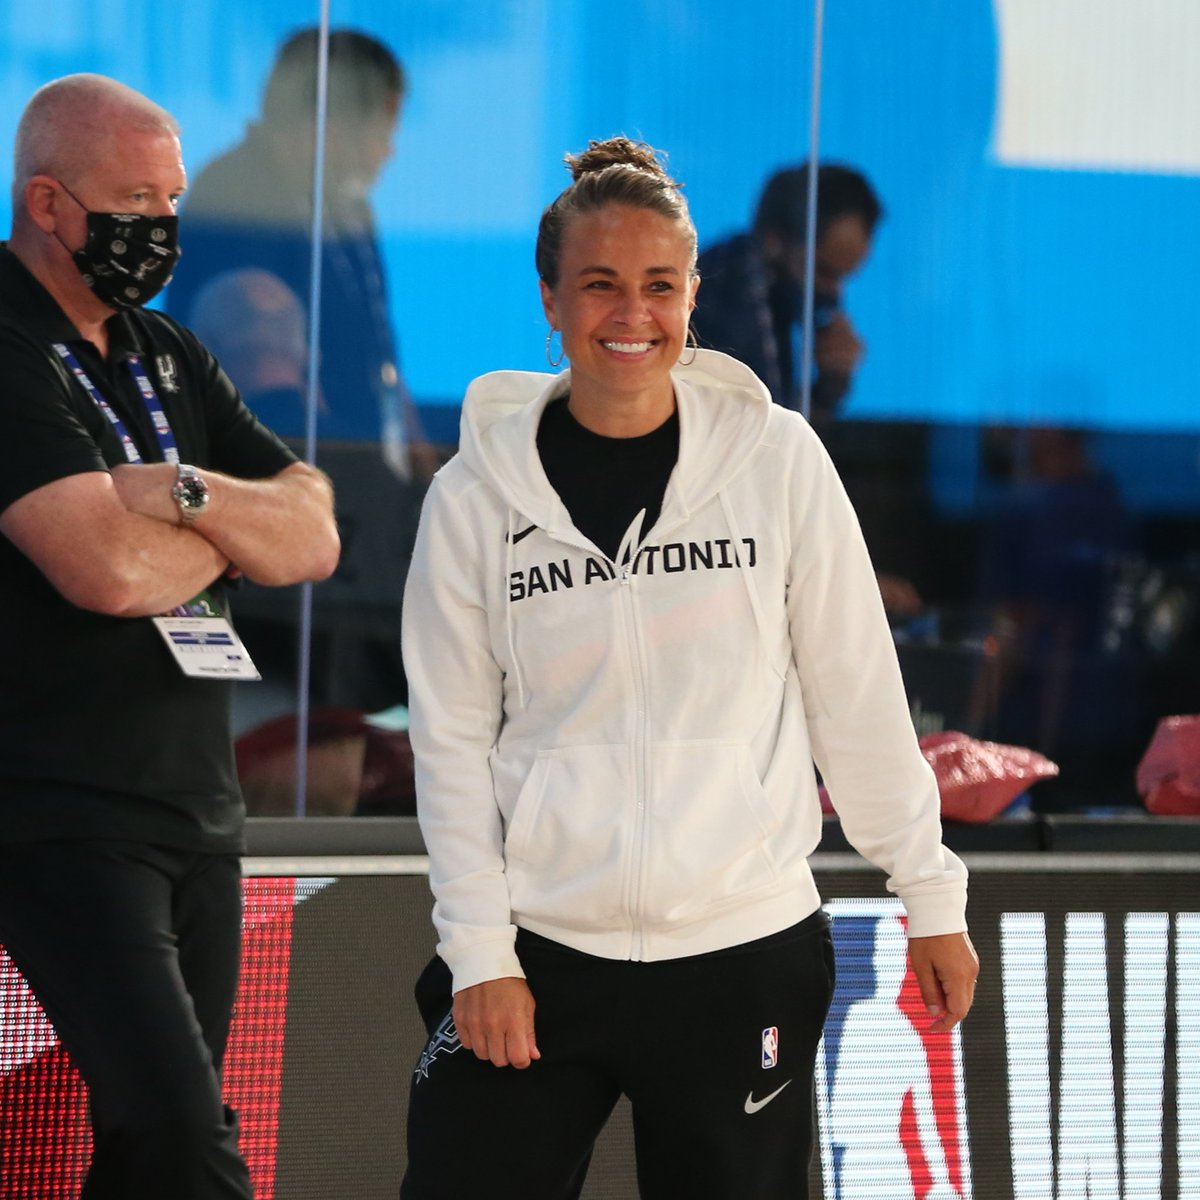 """""""At the end of the day, it's most important what you think about yourself and believe about yourself than what anyone says."""" - @BeckyHammon #MondayMotivation"""